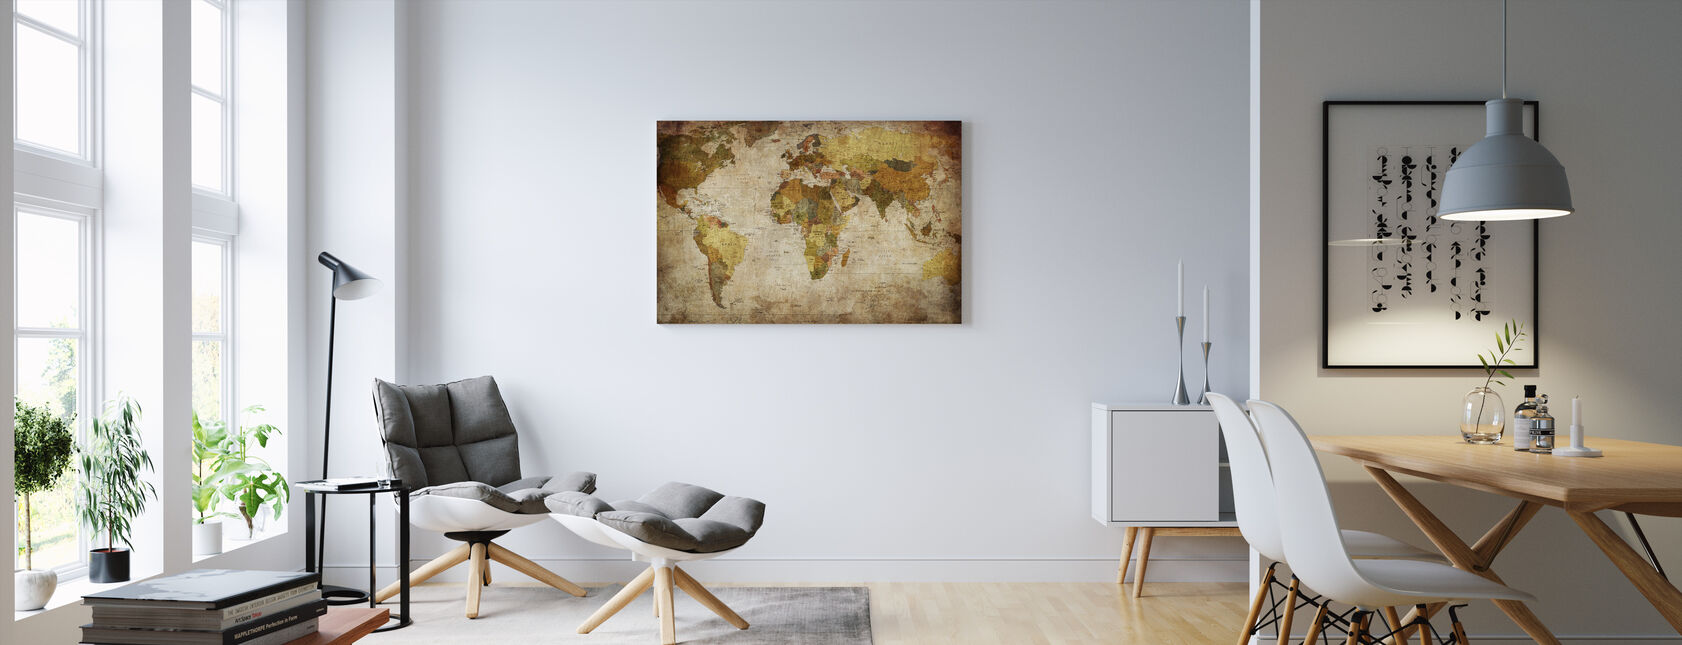 Old Vintage World Map - Canvas print - Living Room